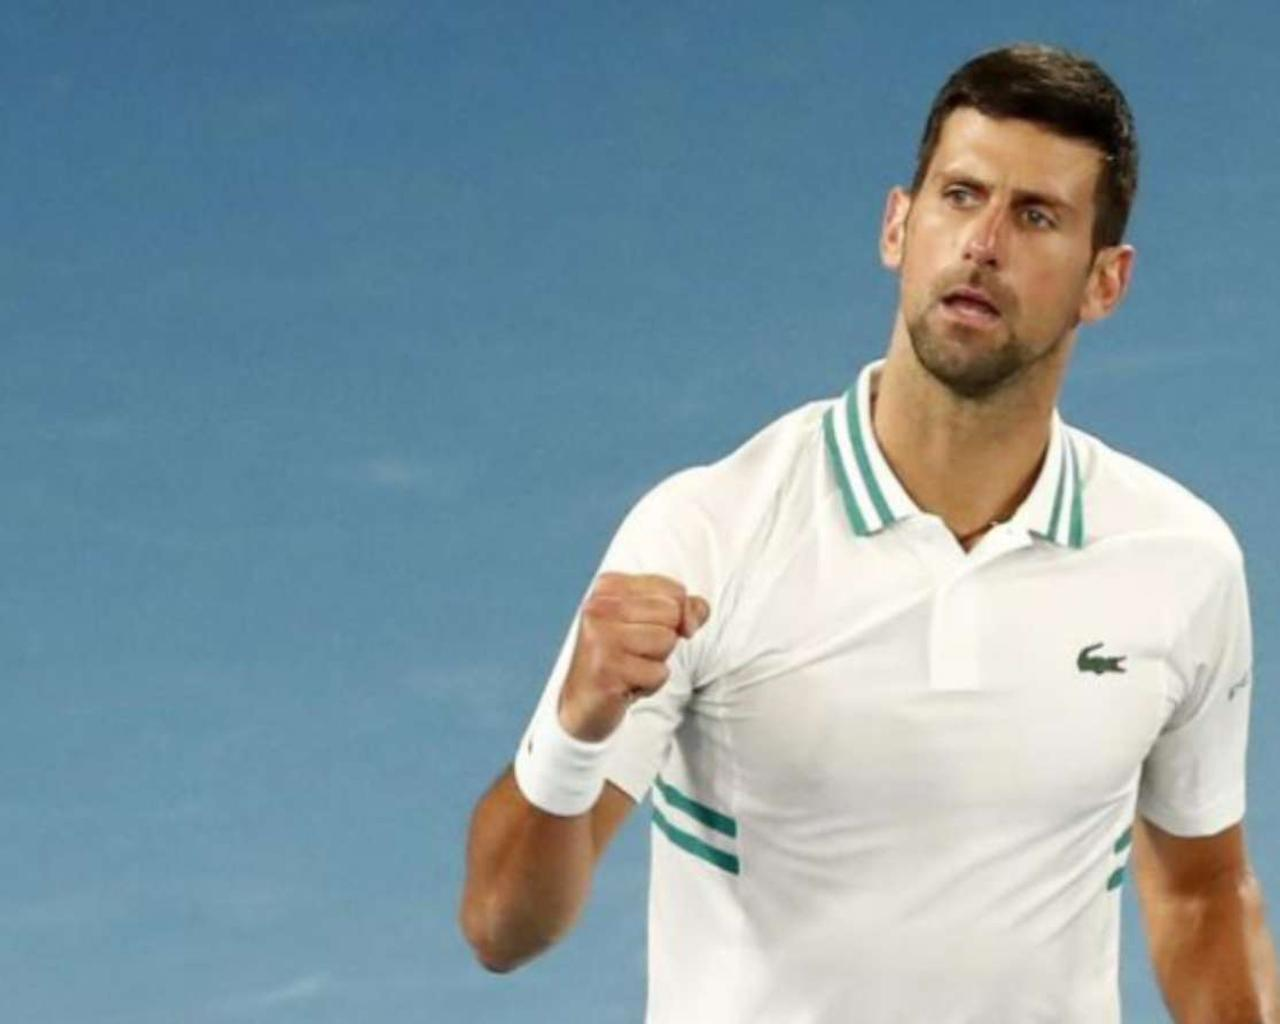 A new chapter in the war between Djokovic and Nadal: I'm not obsessed with that.""